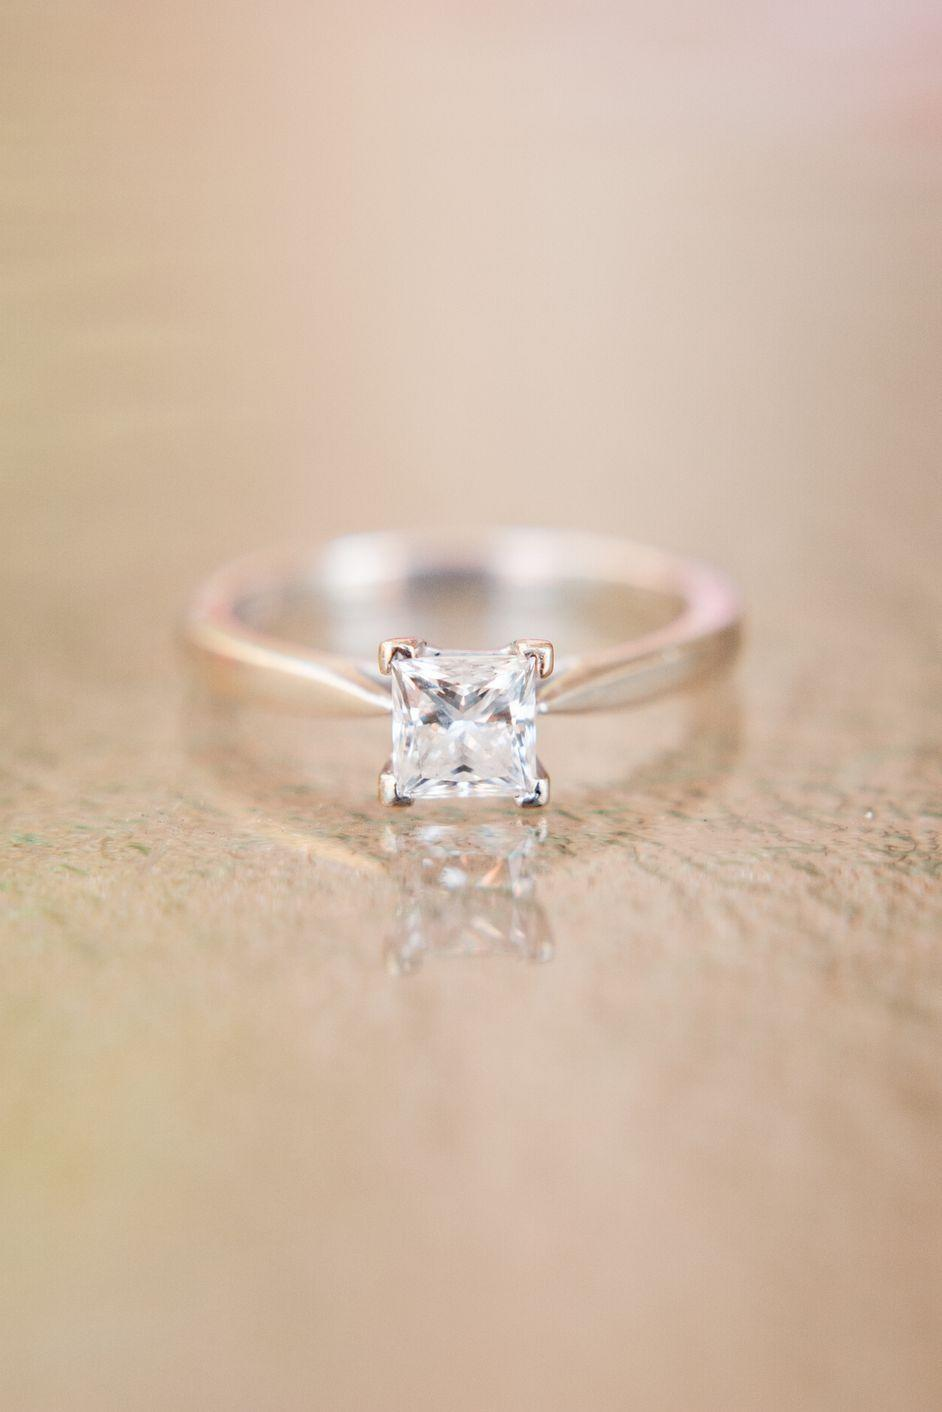 <p>Although the princess cut diamond first began circulating in the '60s, it was in the '70s that the style really took off. The look of the square diamond was either worn as a solitaire or with tapered baguettes to the side.</p>